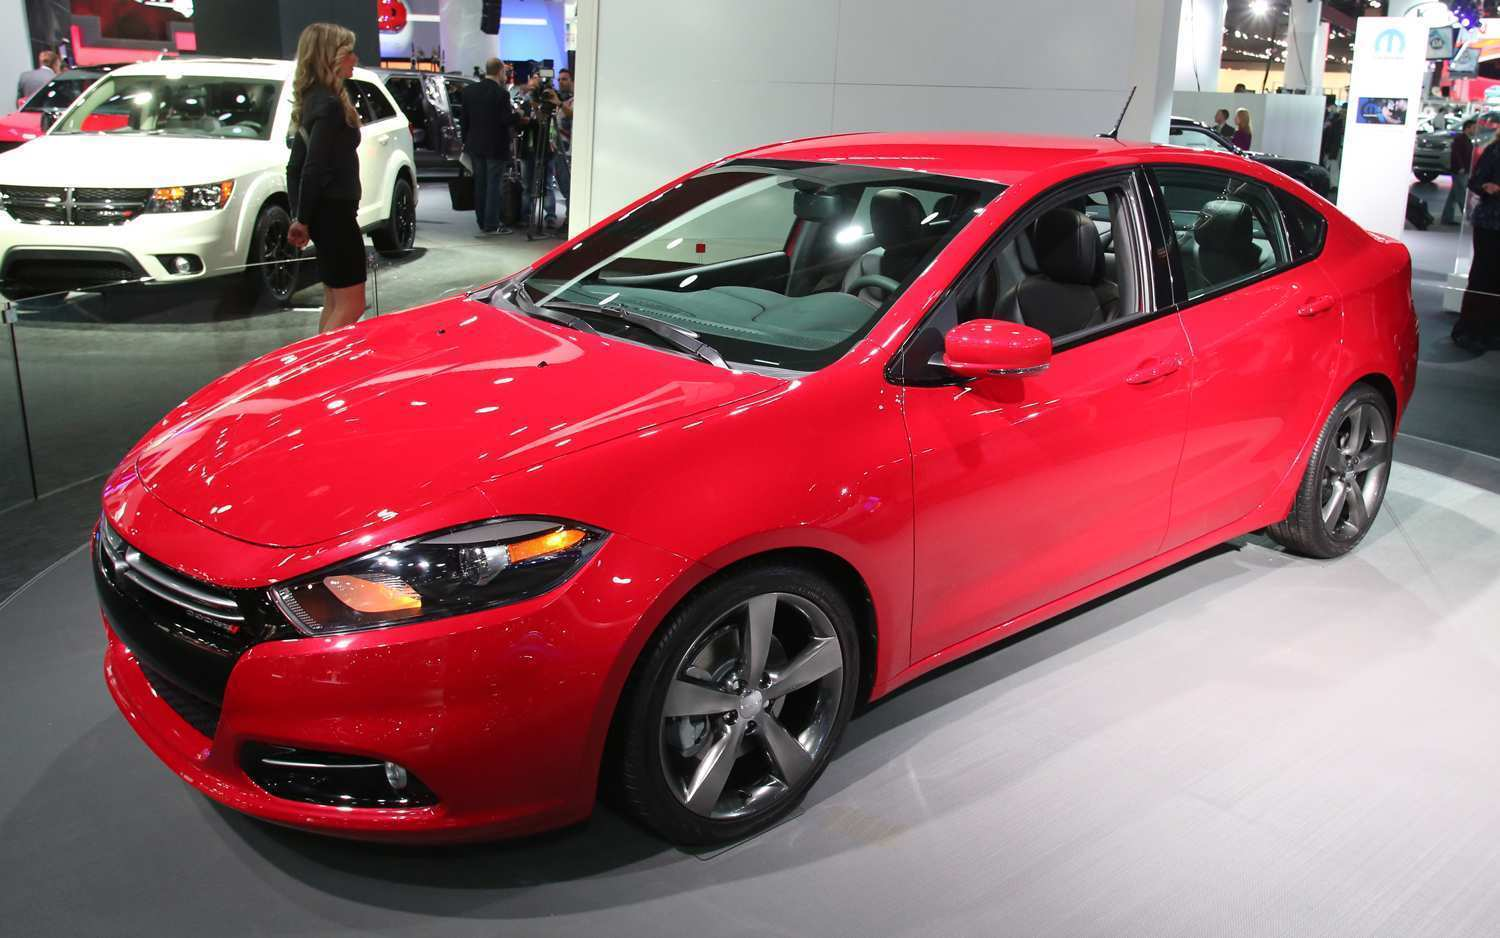 77 New 2020 Dodge Dart Srt4 Driving Art Concept